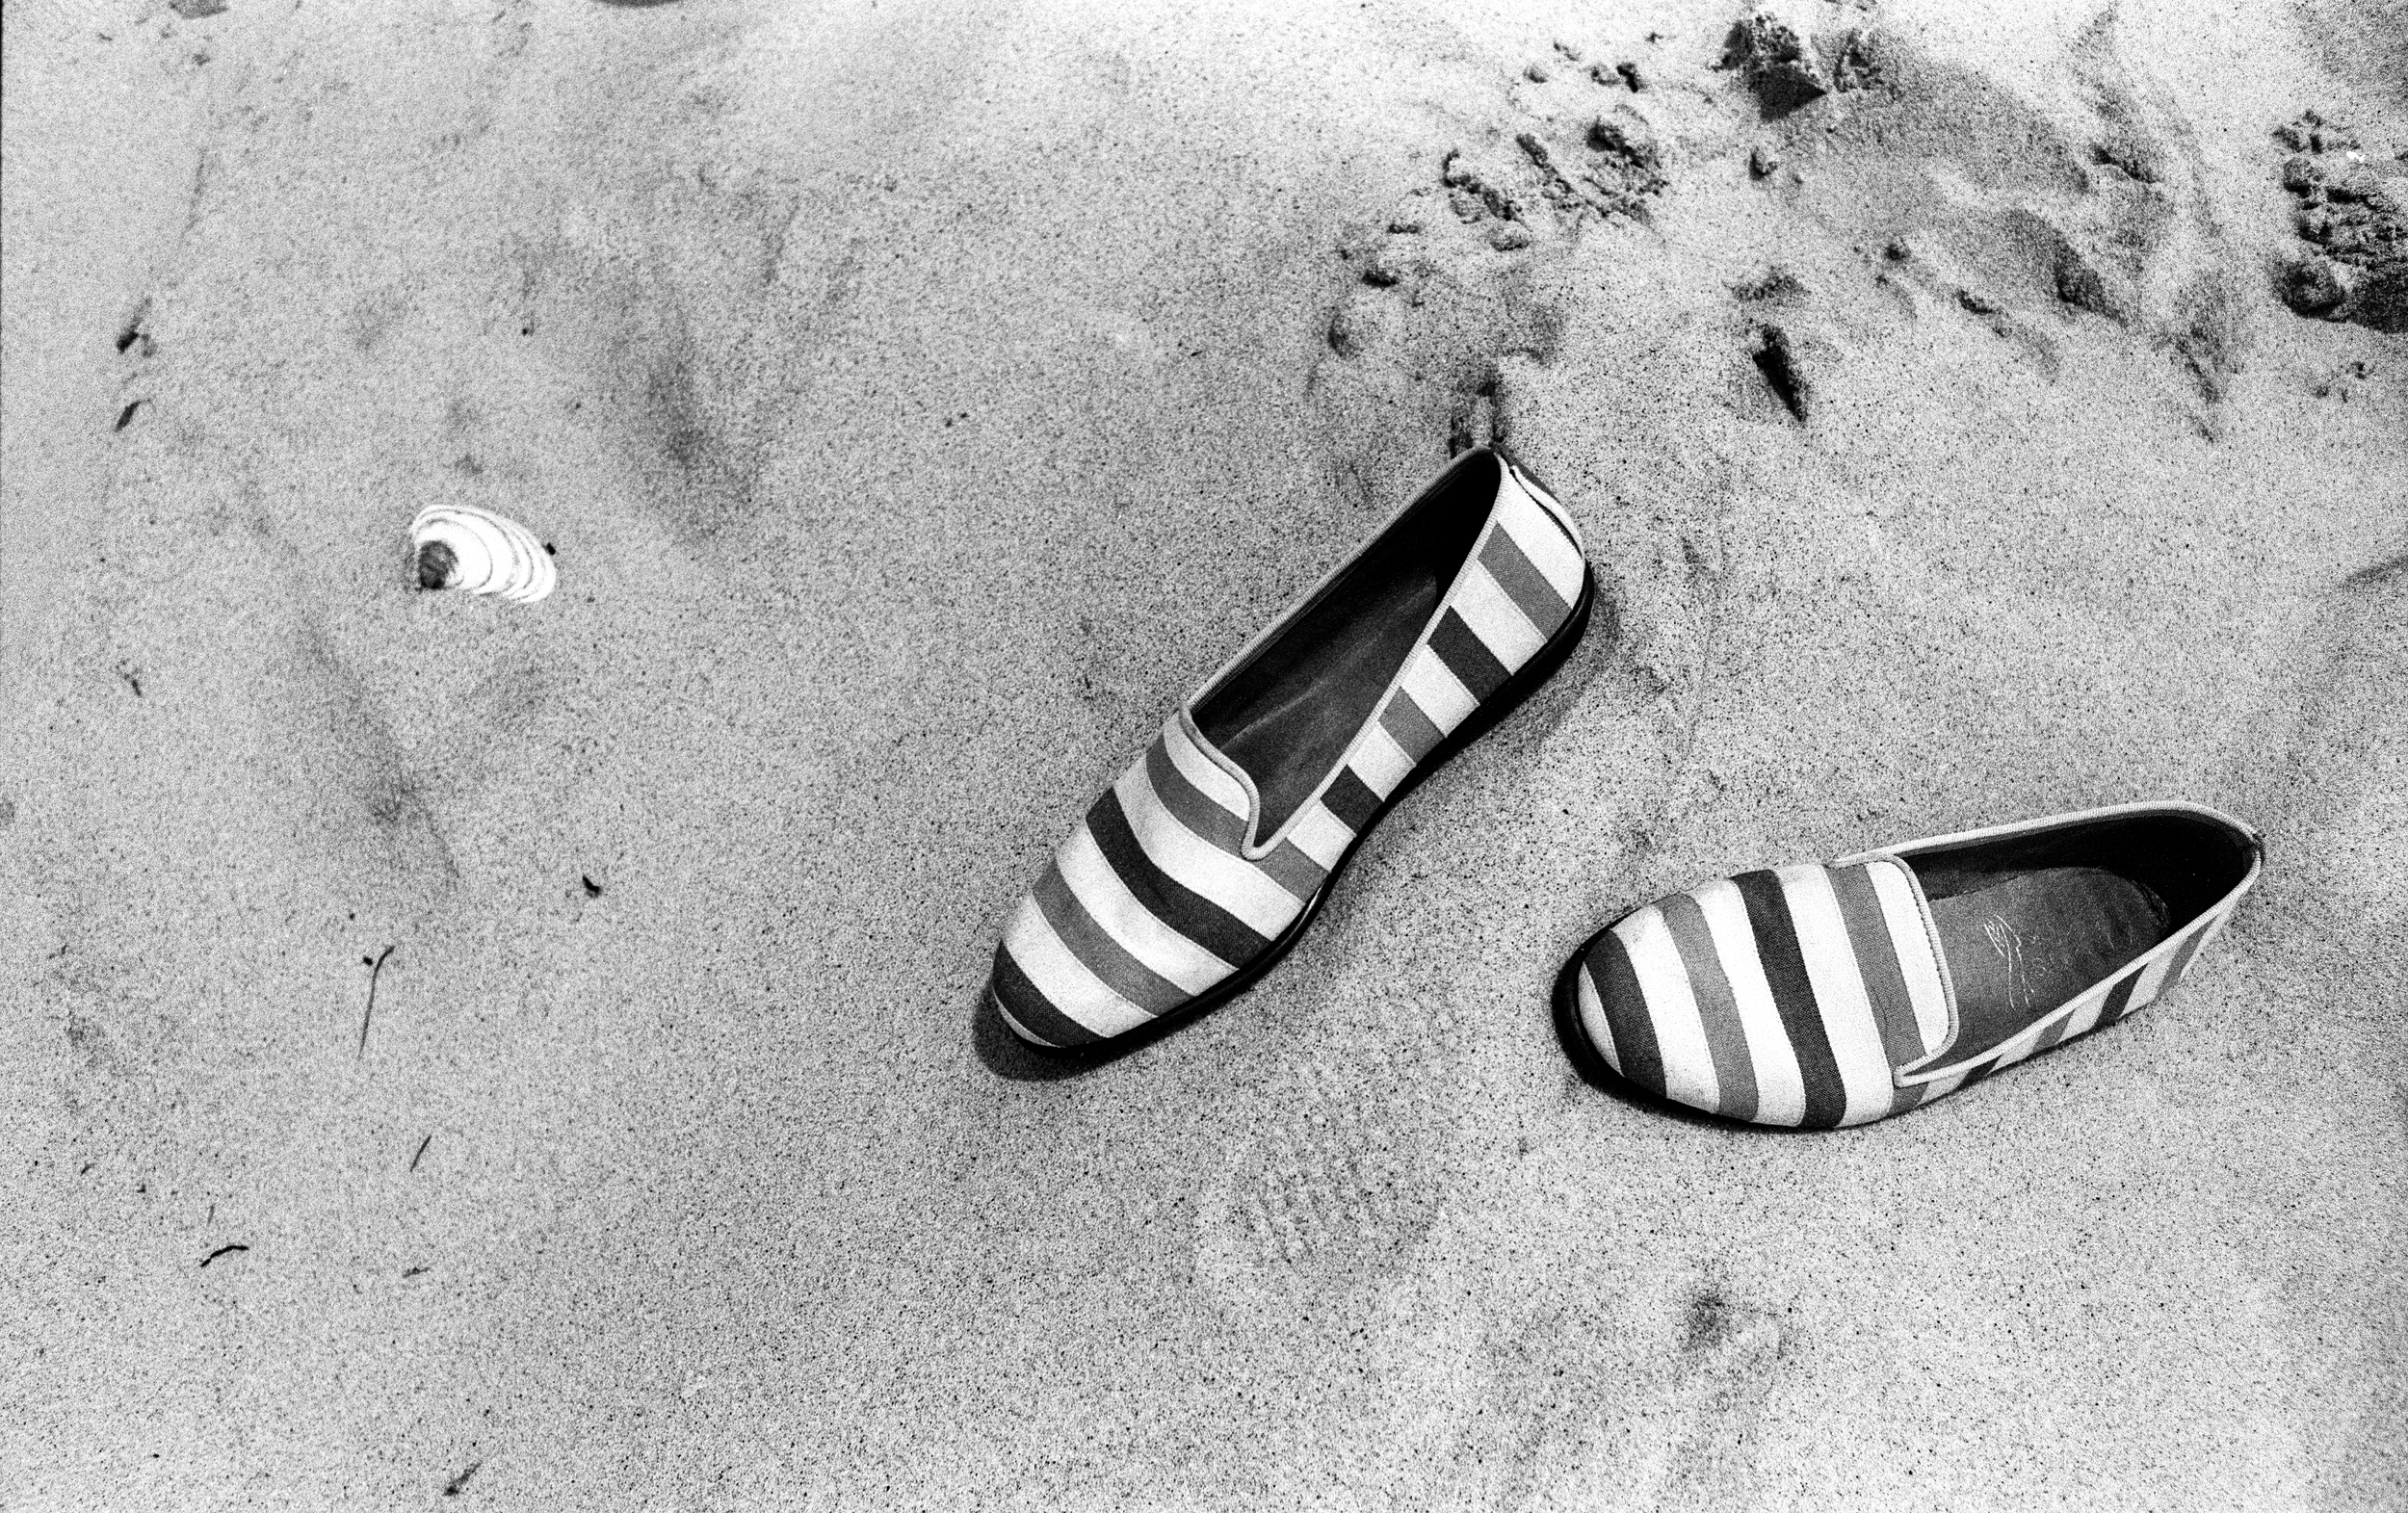 Sand Between Your Toes, Lavalette - 2014